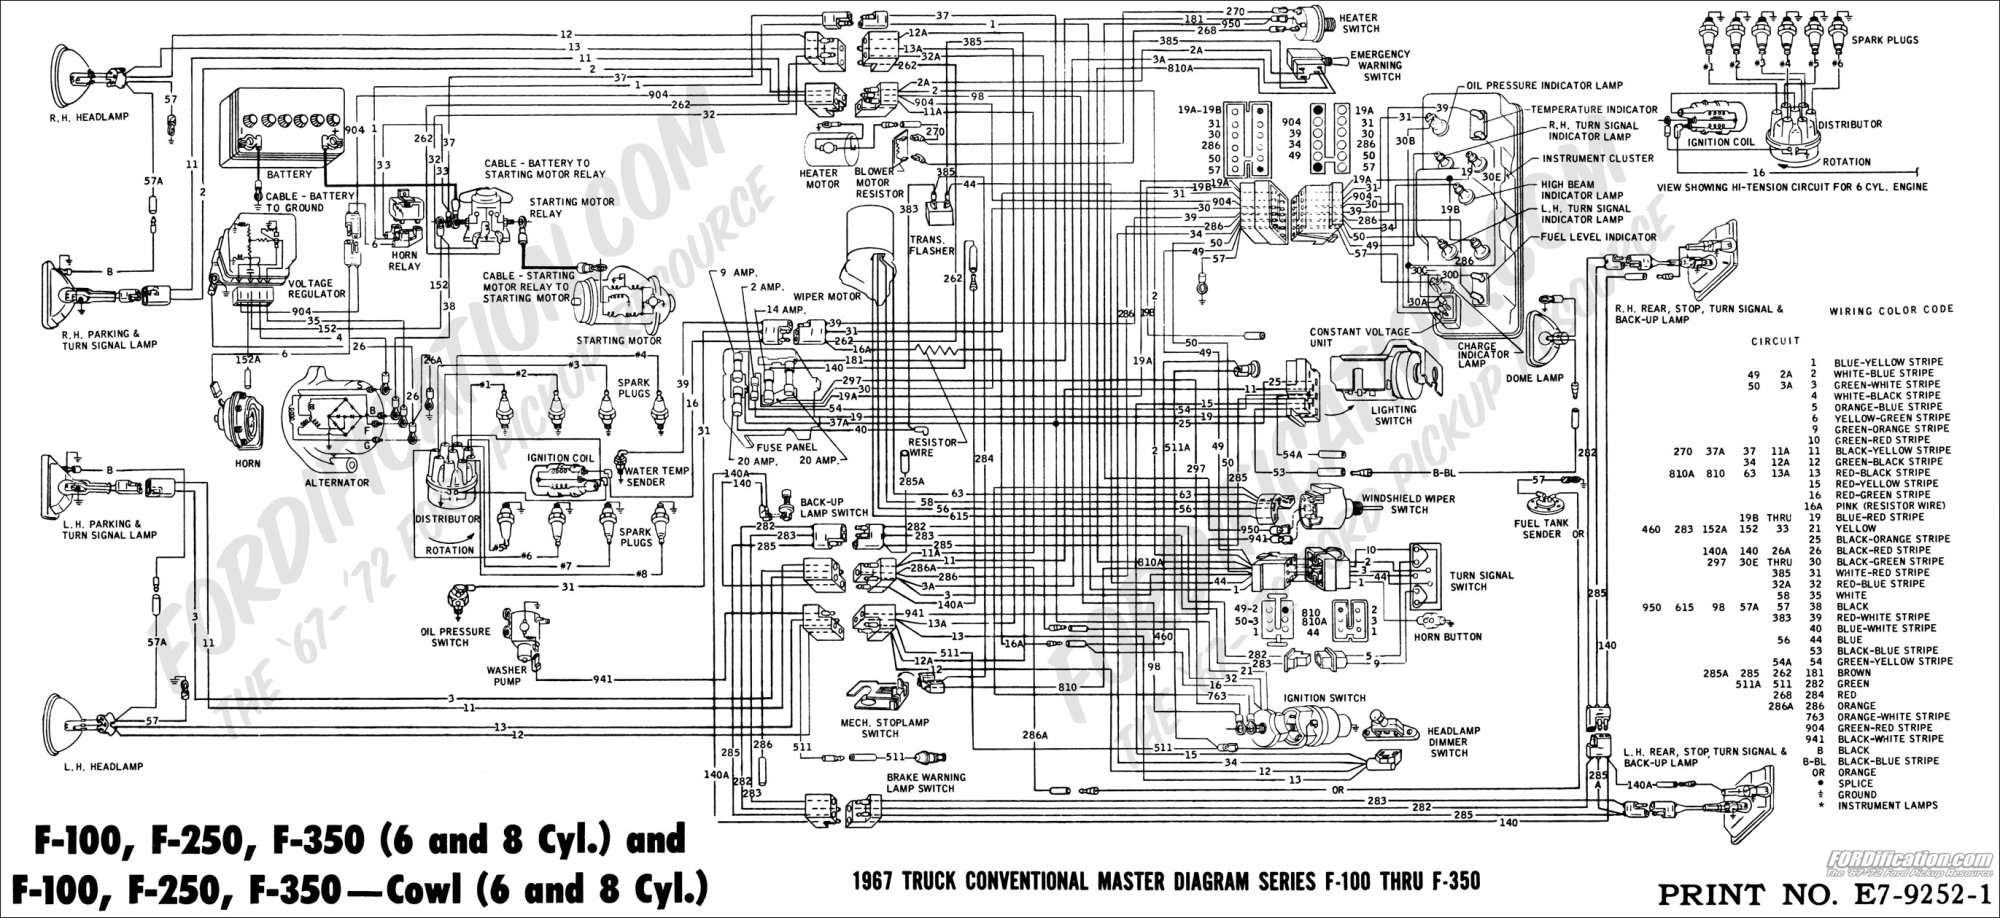 hight resolution of 2001 mustang gt wiring schematic for mach 460 system ford wiring